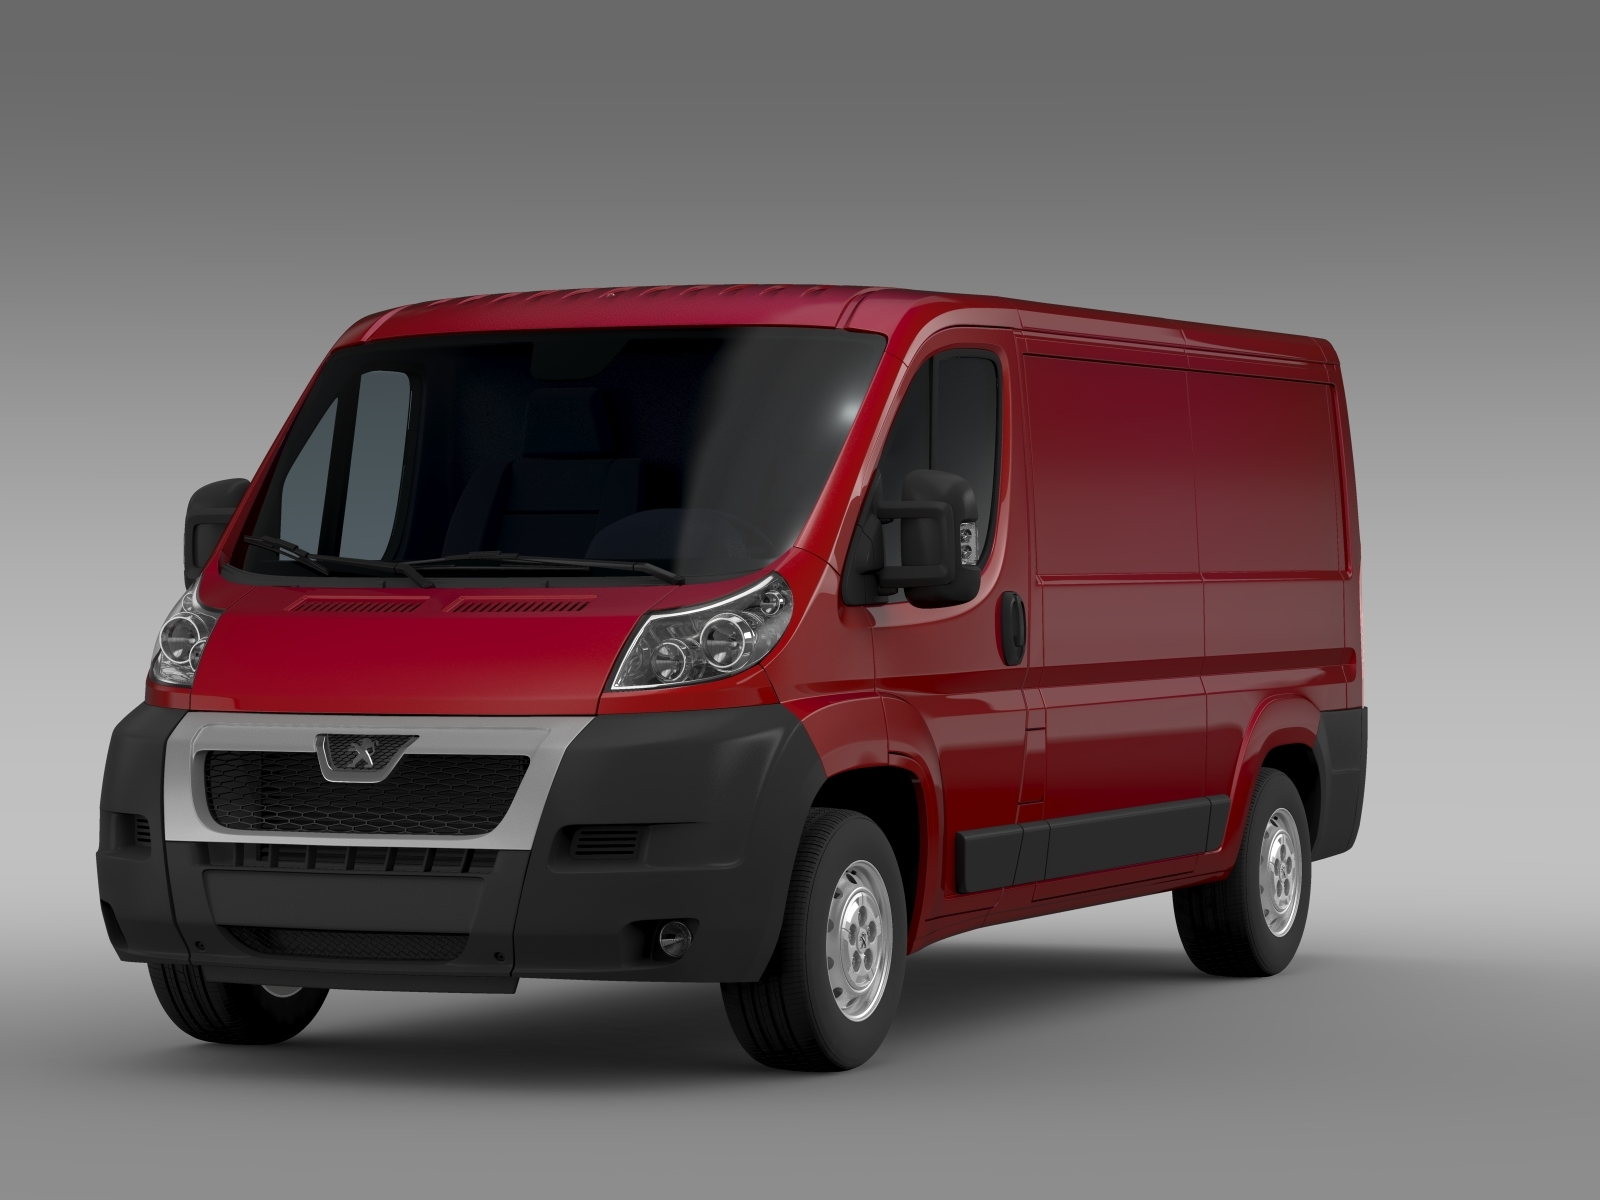 peugeot boxer van l2h1 2006 2014 3d model. Black Bedroom Furniture Sets. Home Design Ideas